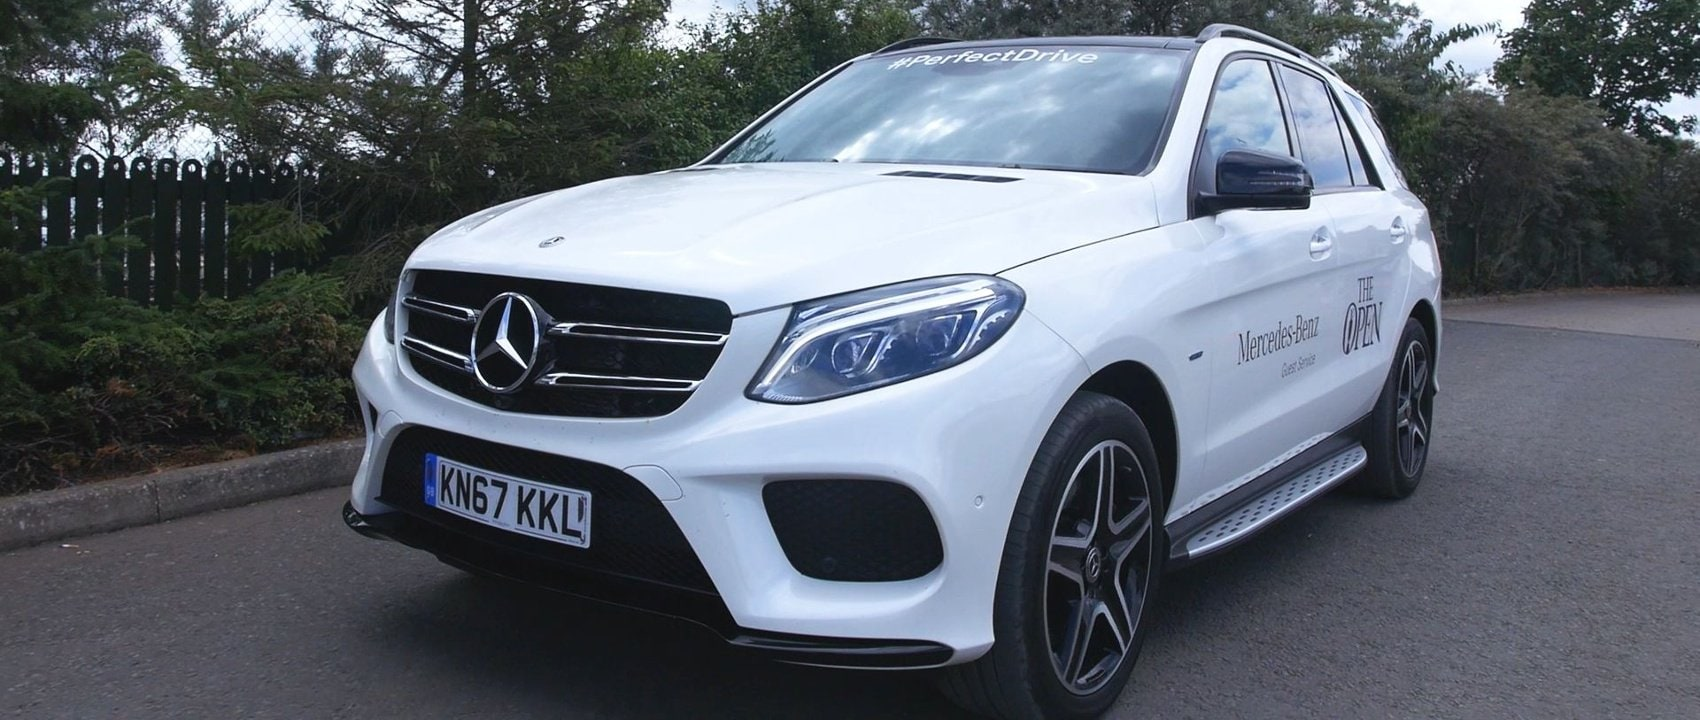 Mercedes-Benz invited spectators at The 147th Open to win a trip in an official Courtesy Car (GLE 500 e 4MATIC).